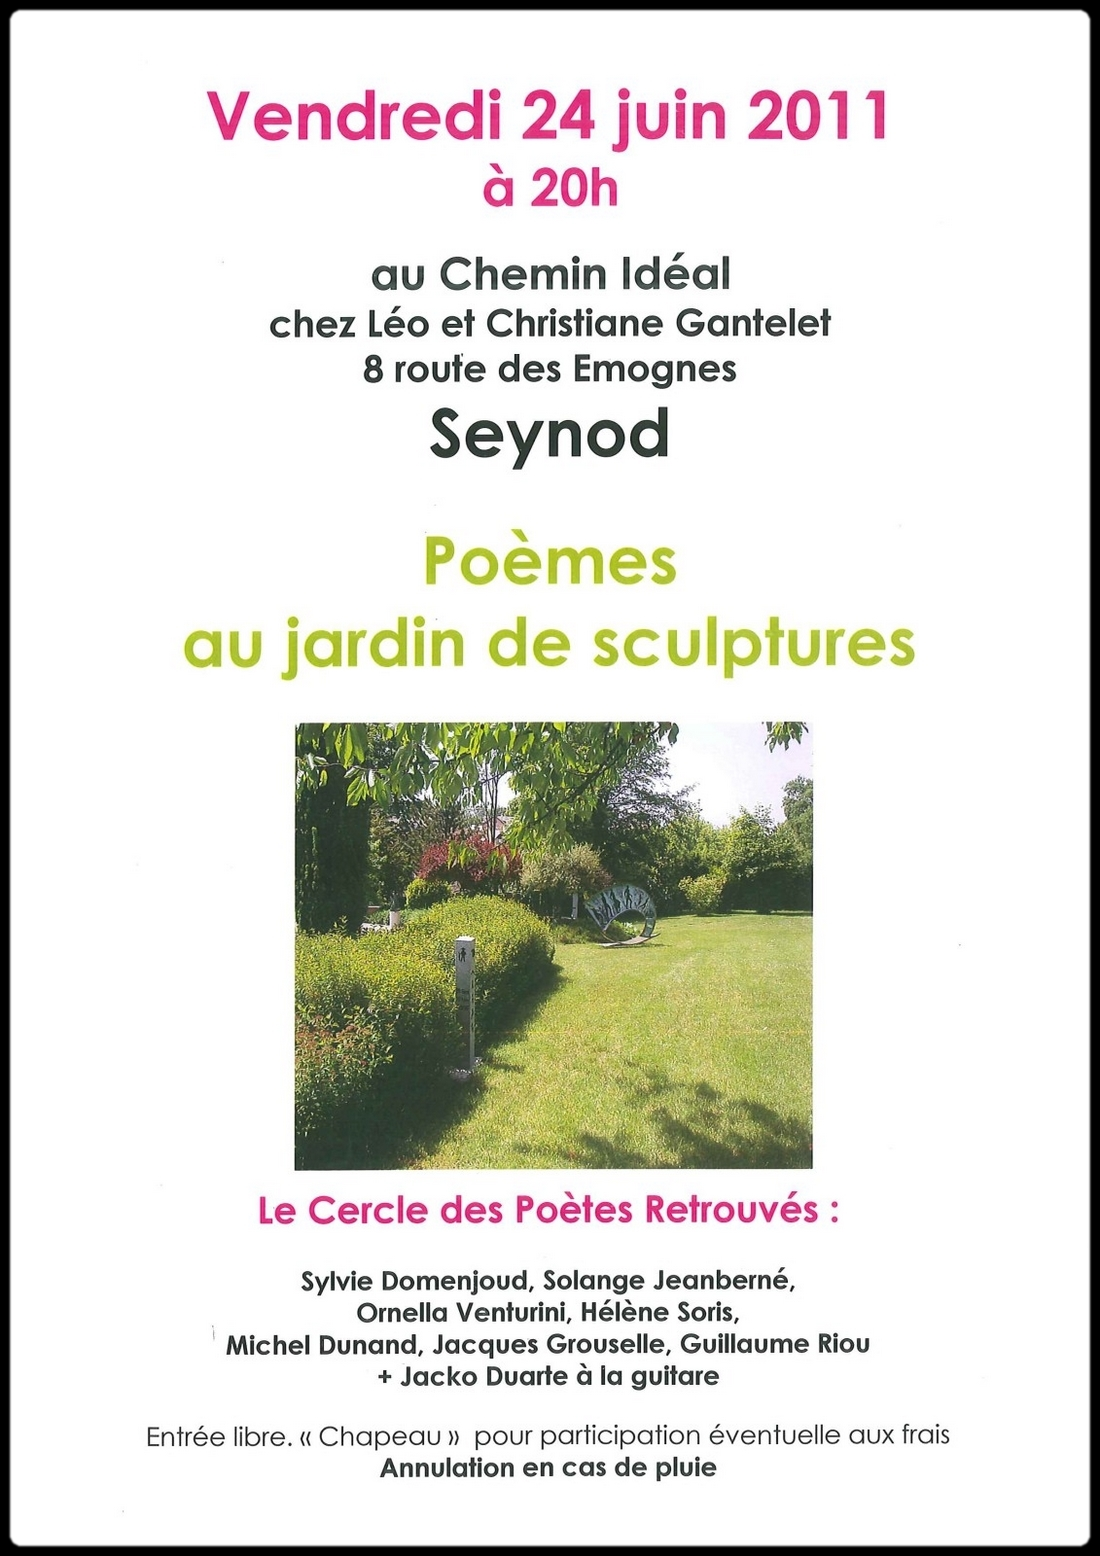 Poemes-au-jardin-des-sculptures-chemin-ideal-poesie